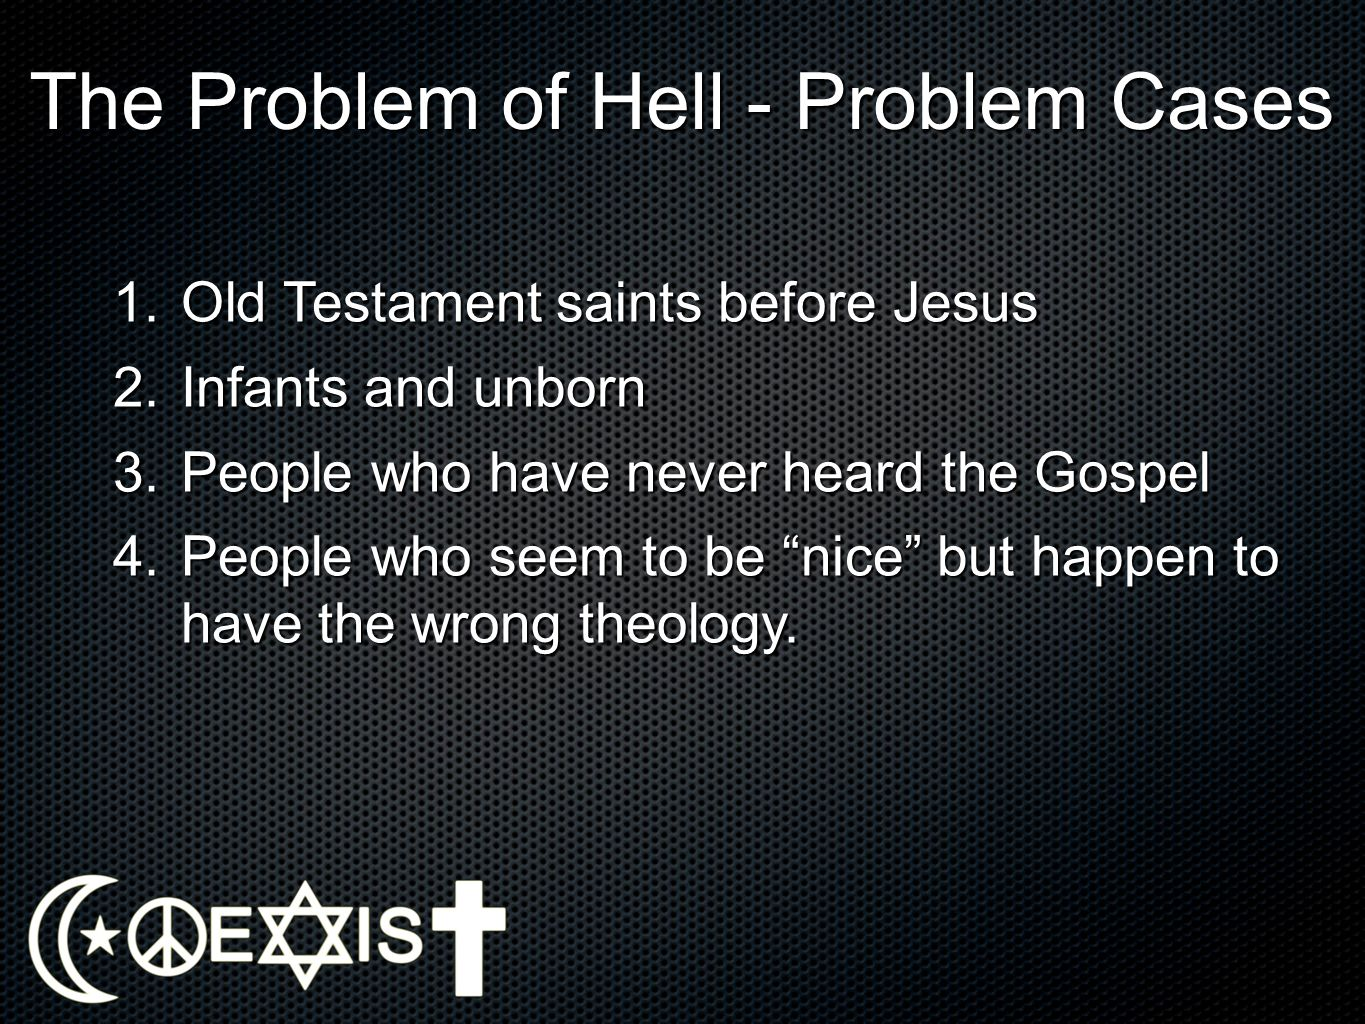 The Problem of Hell - Problem Cases